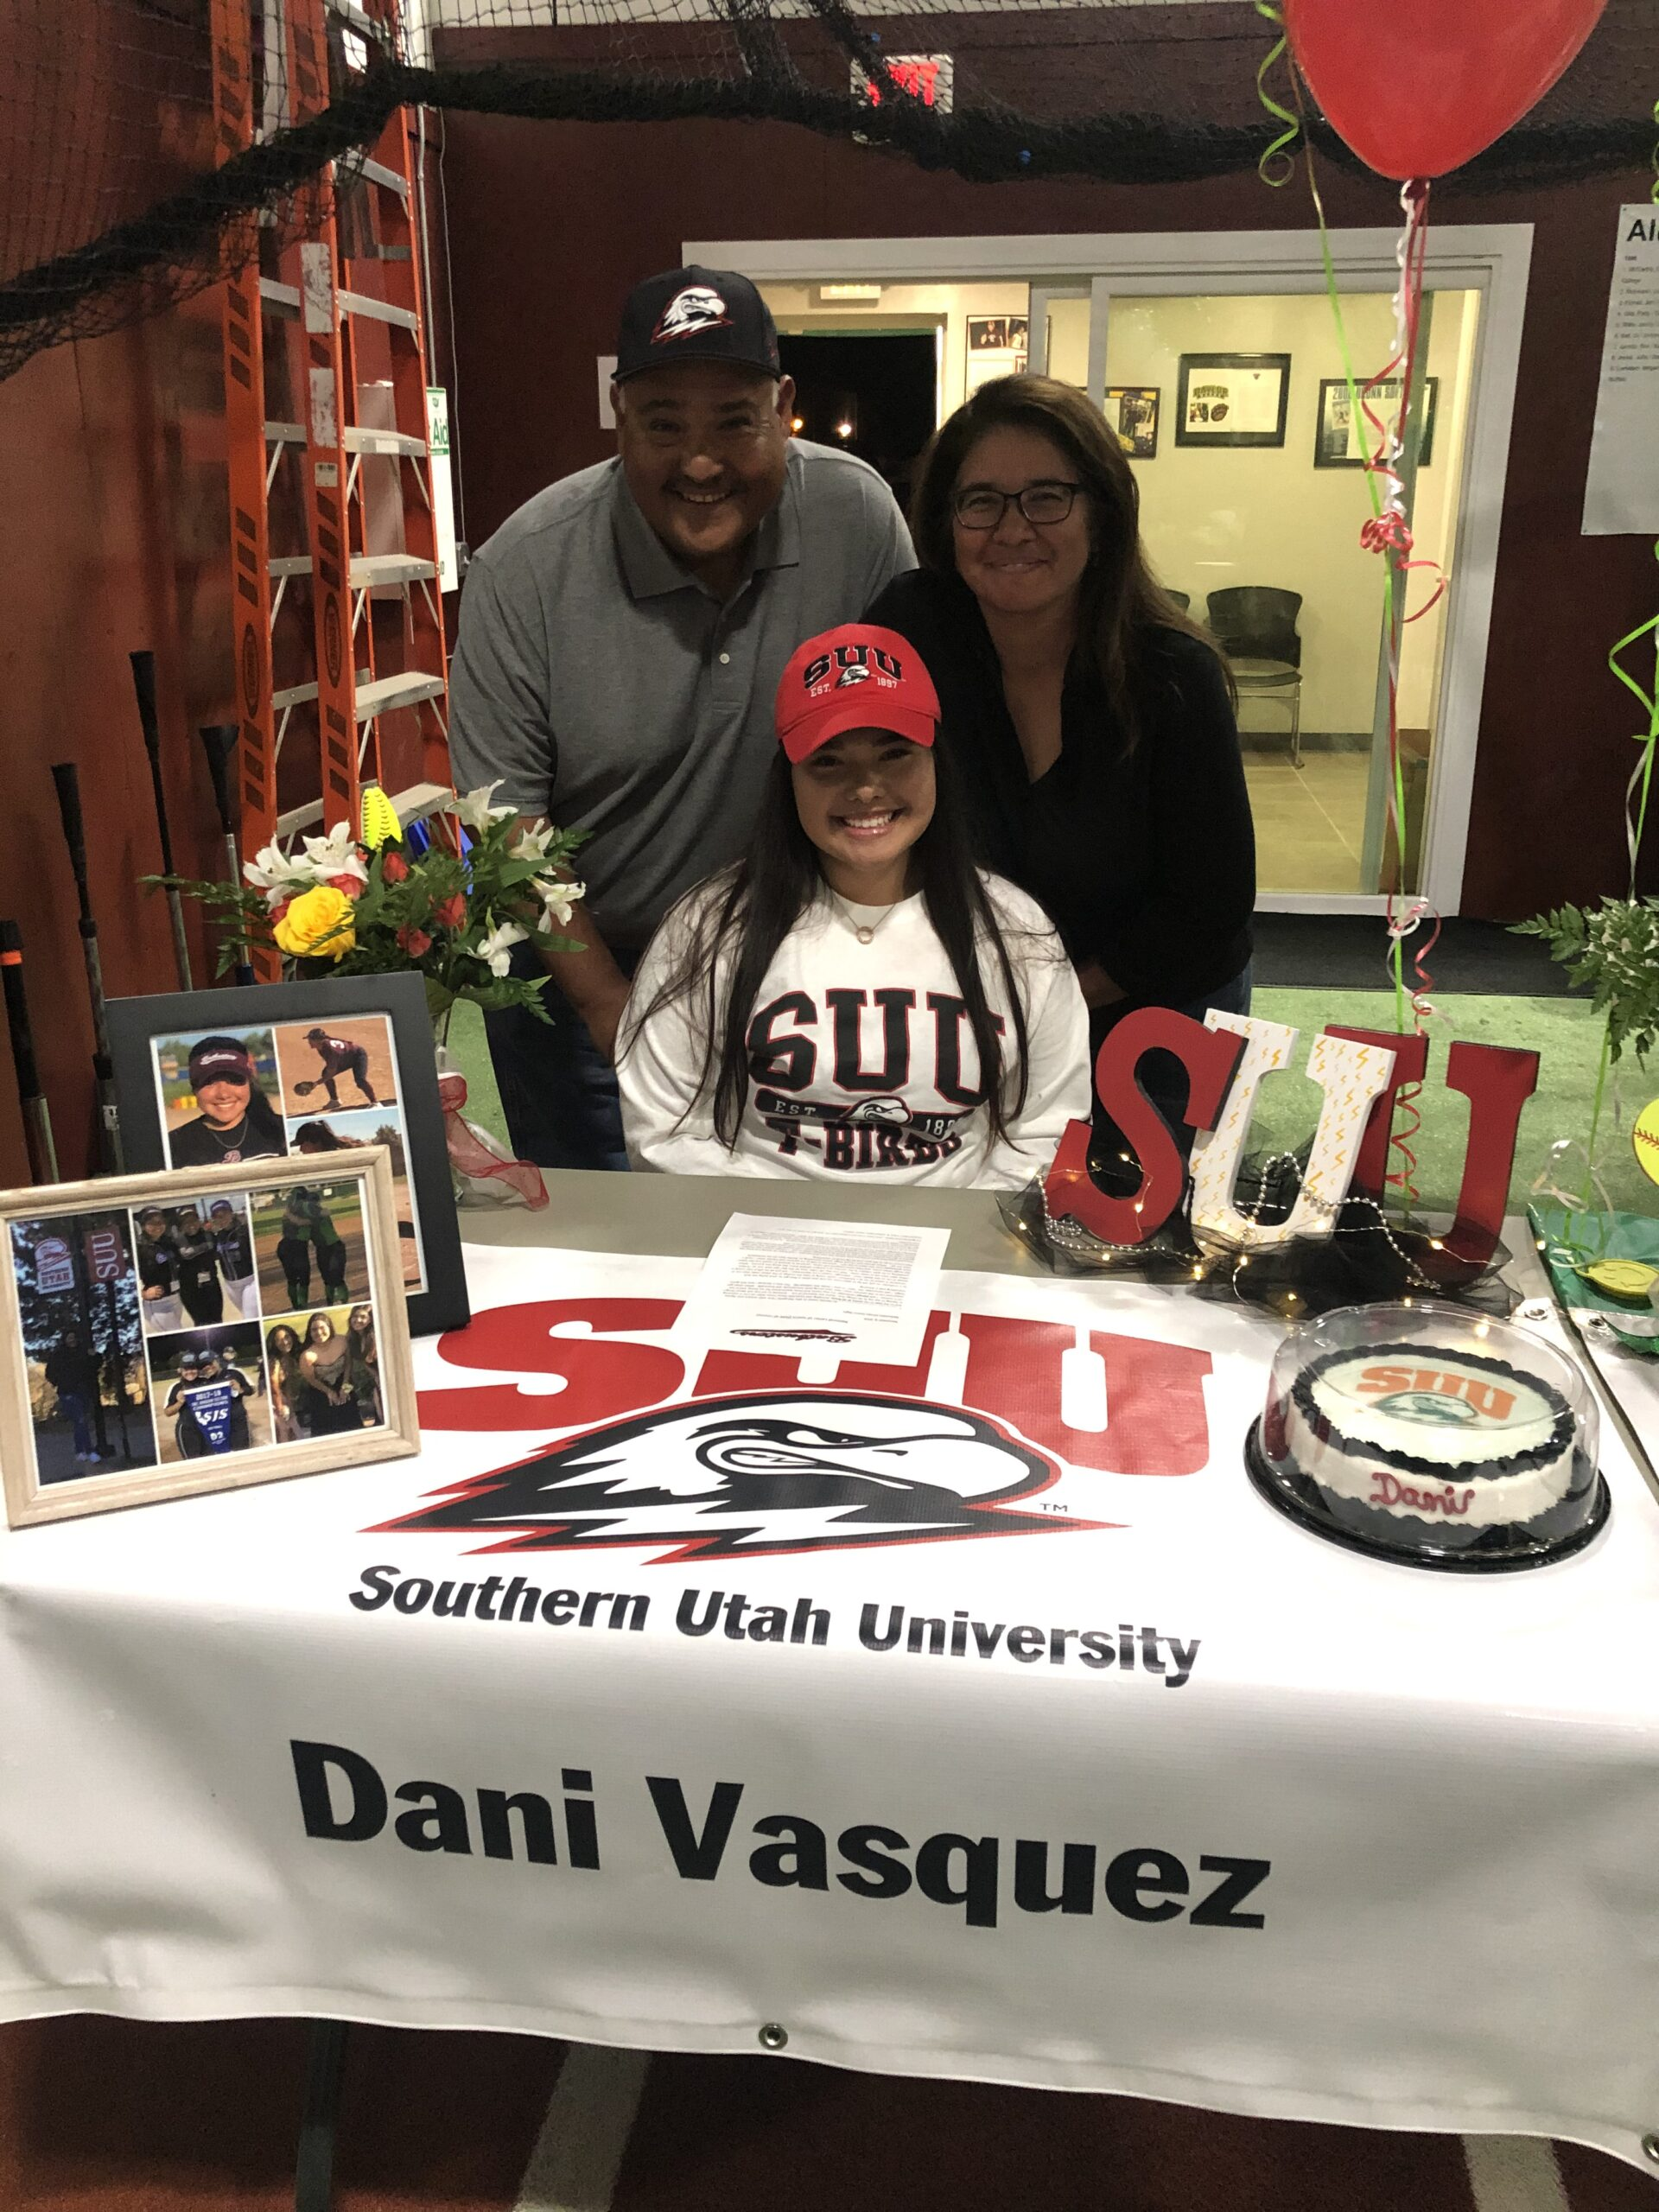 Danielle Vasquez commits to Southern Utah University!